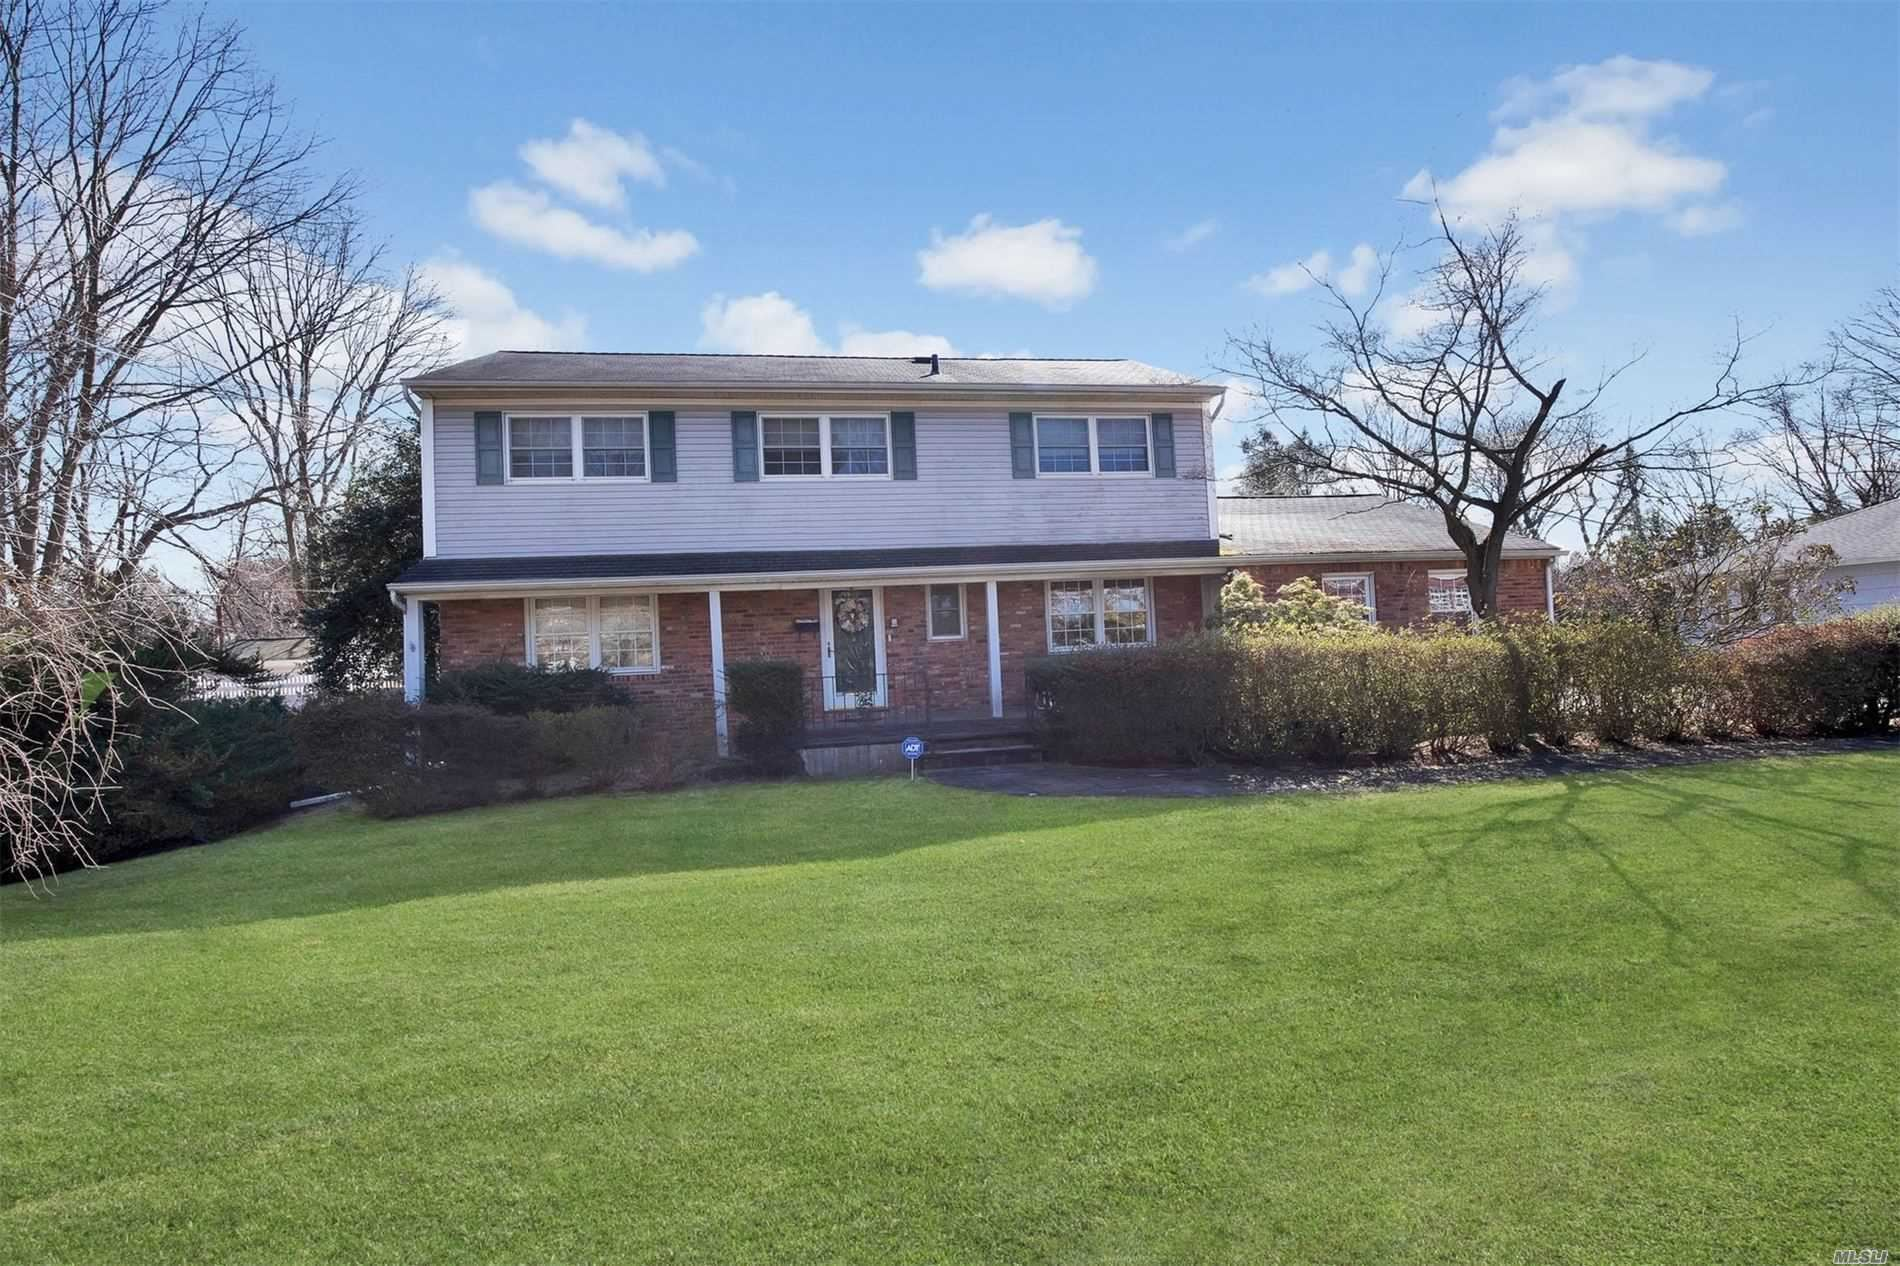 192 Cold Spring Road, Syosset, NY 11791 - MLS#: 3204681